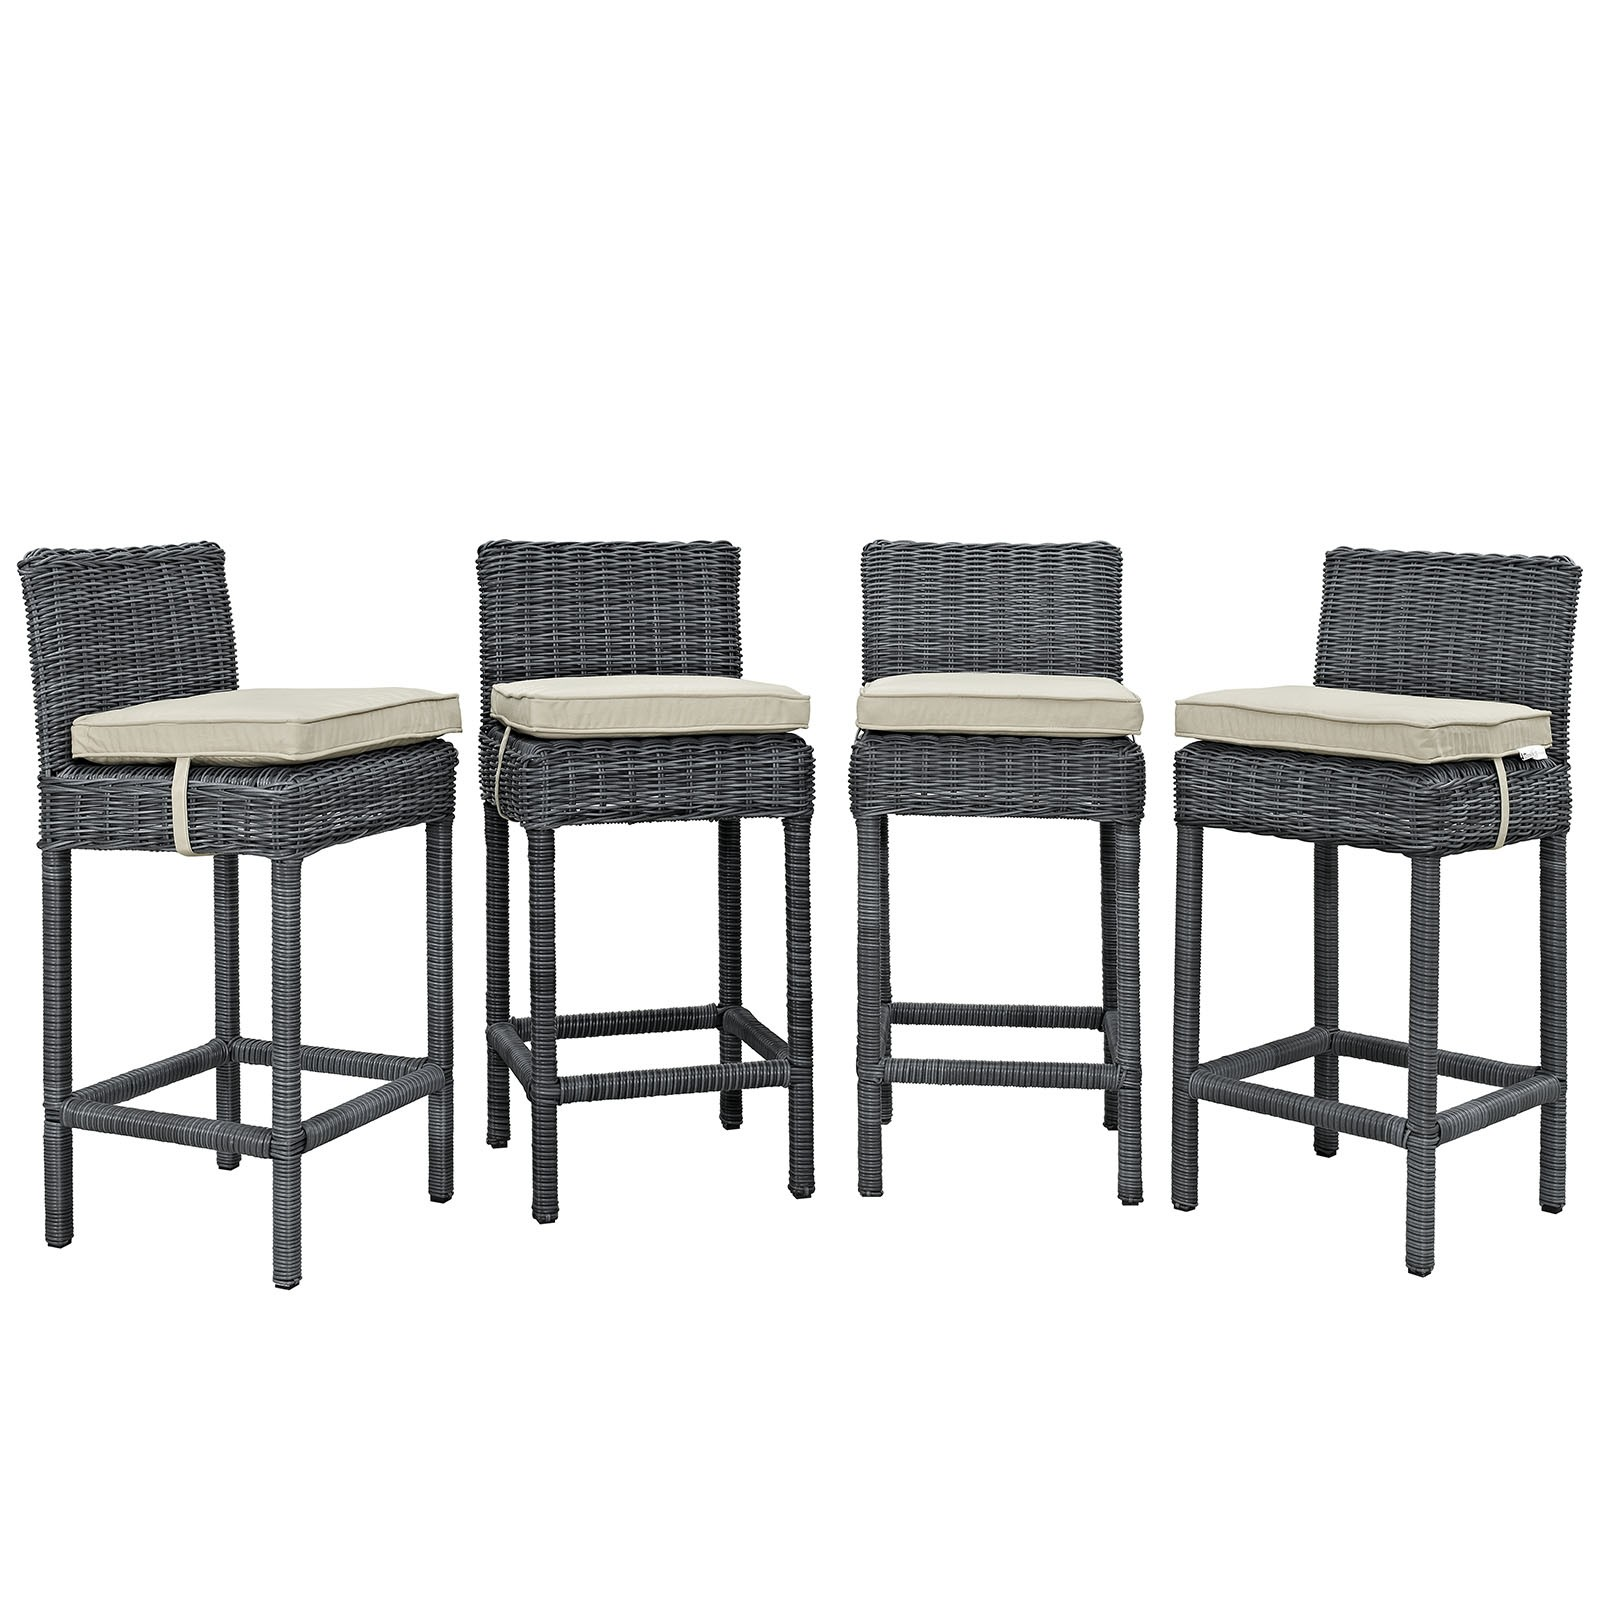 Summon Bar Stool Outdoor Patio Sunbrella